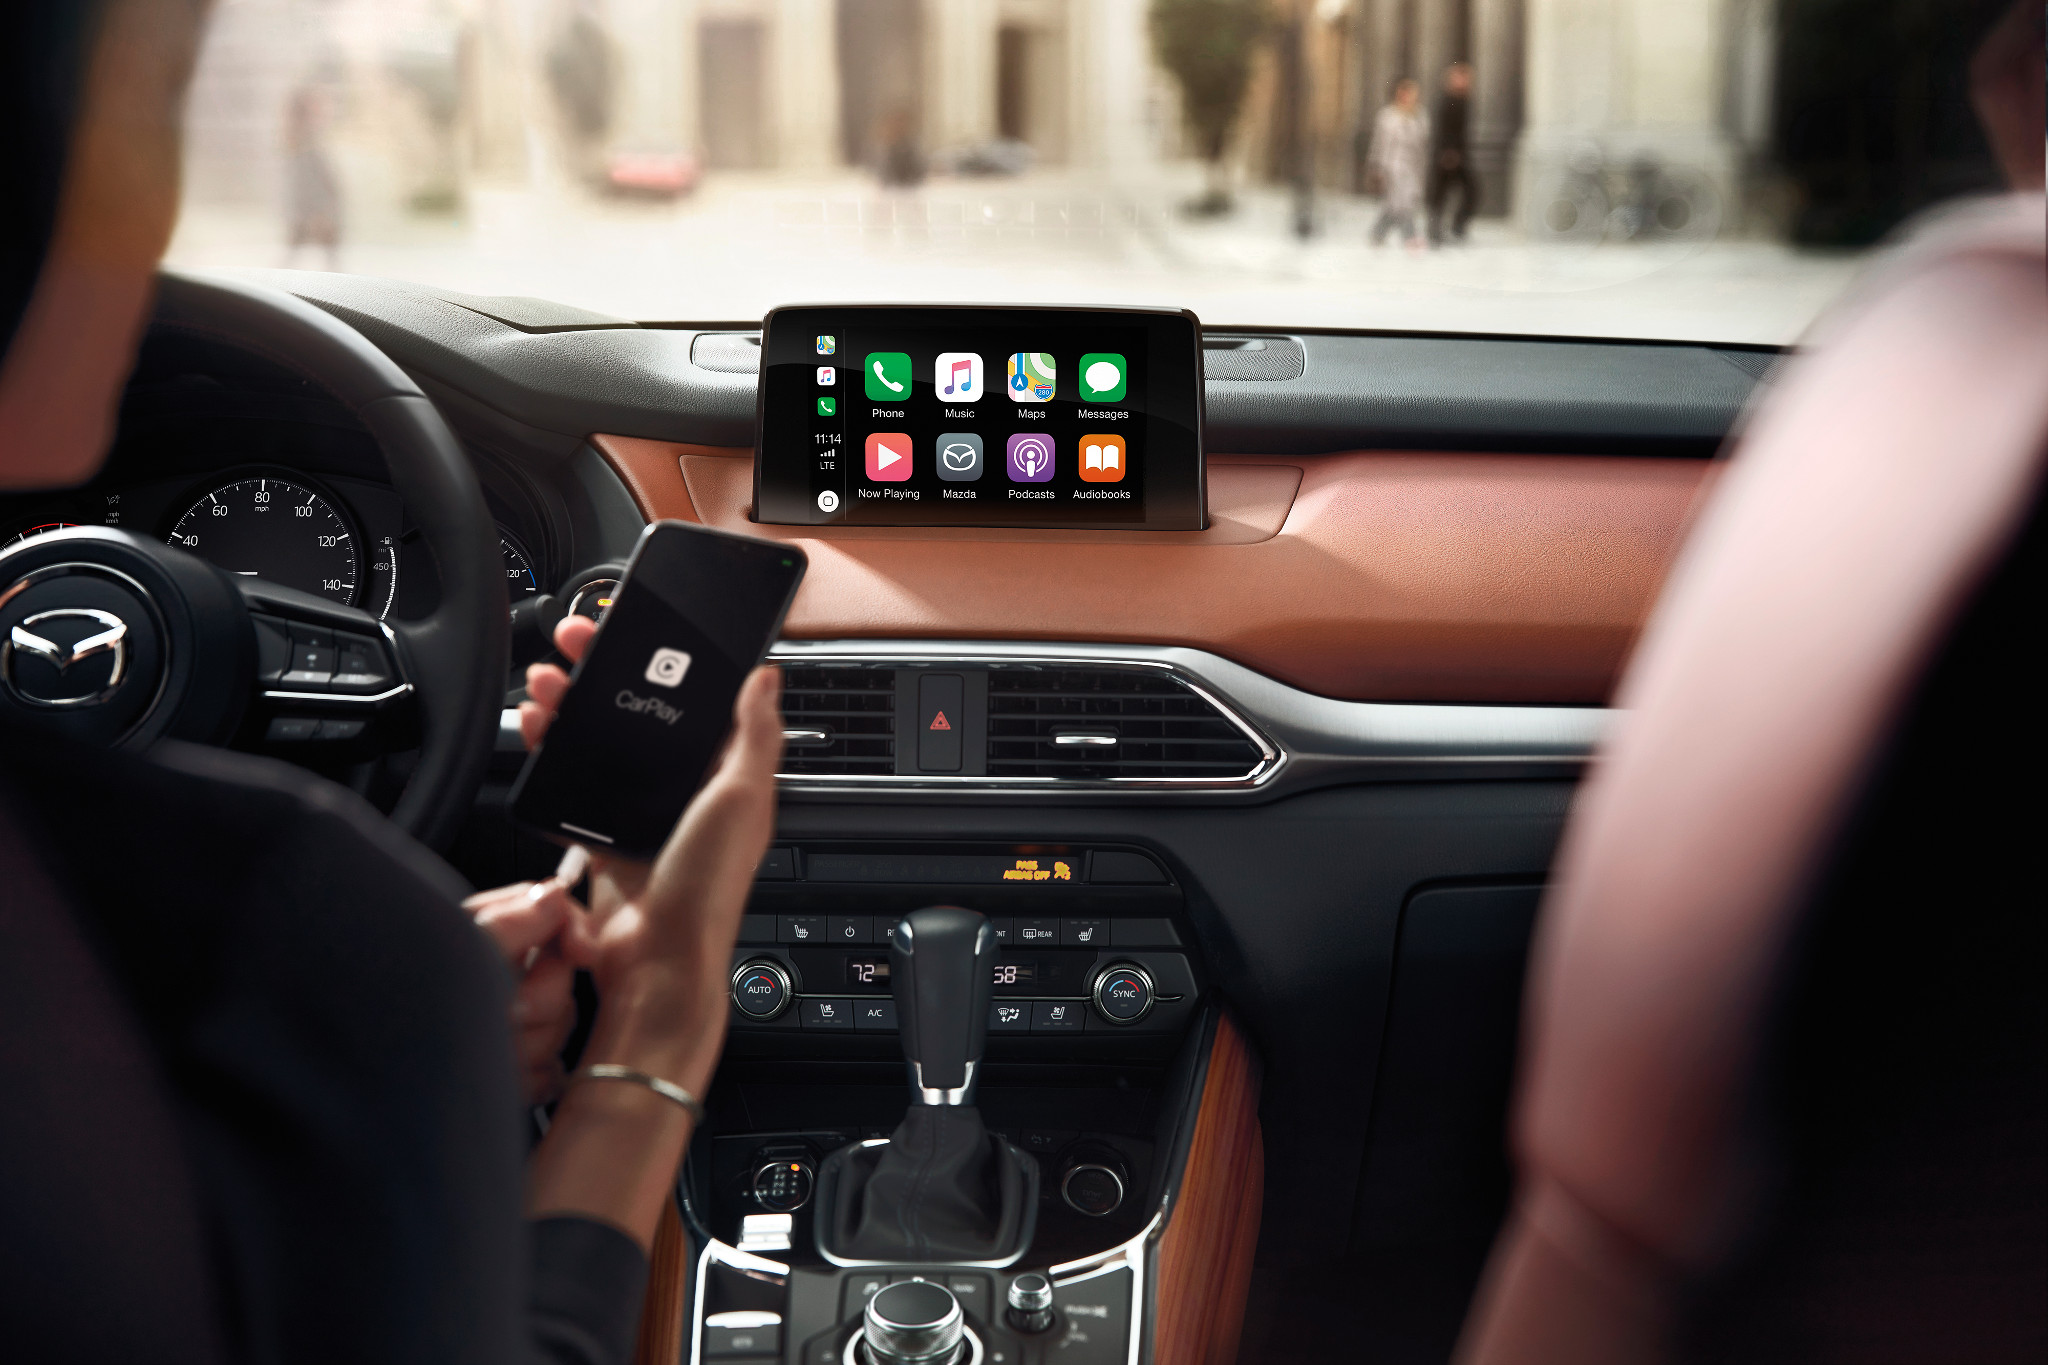 Mazda Connect Smartphone Integration Not So Smart